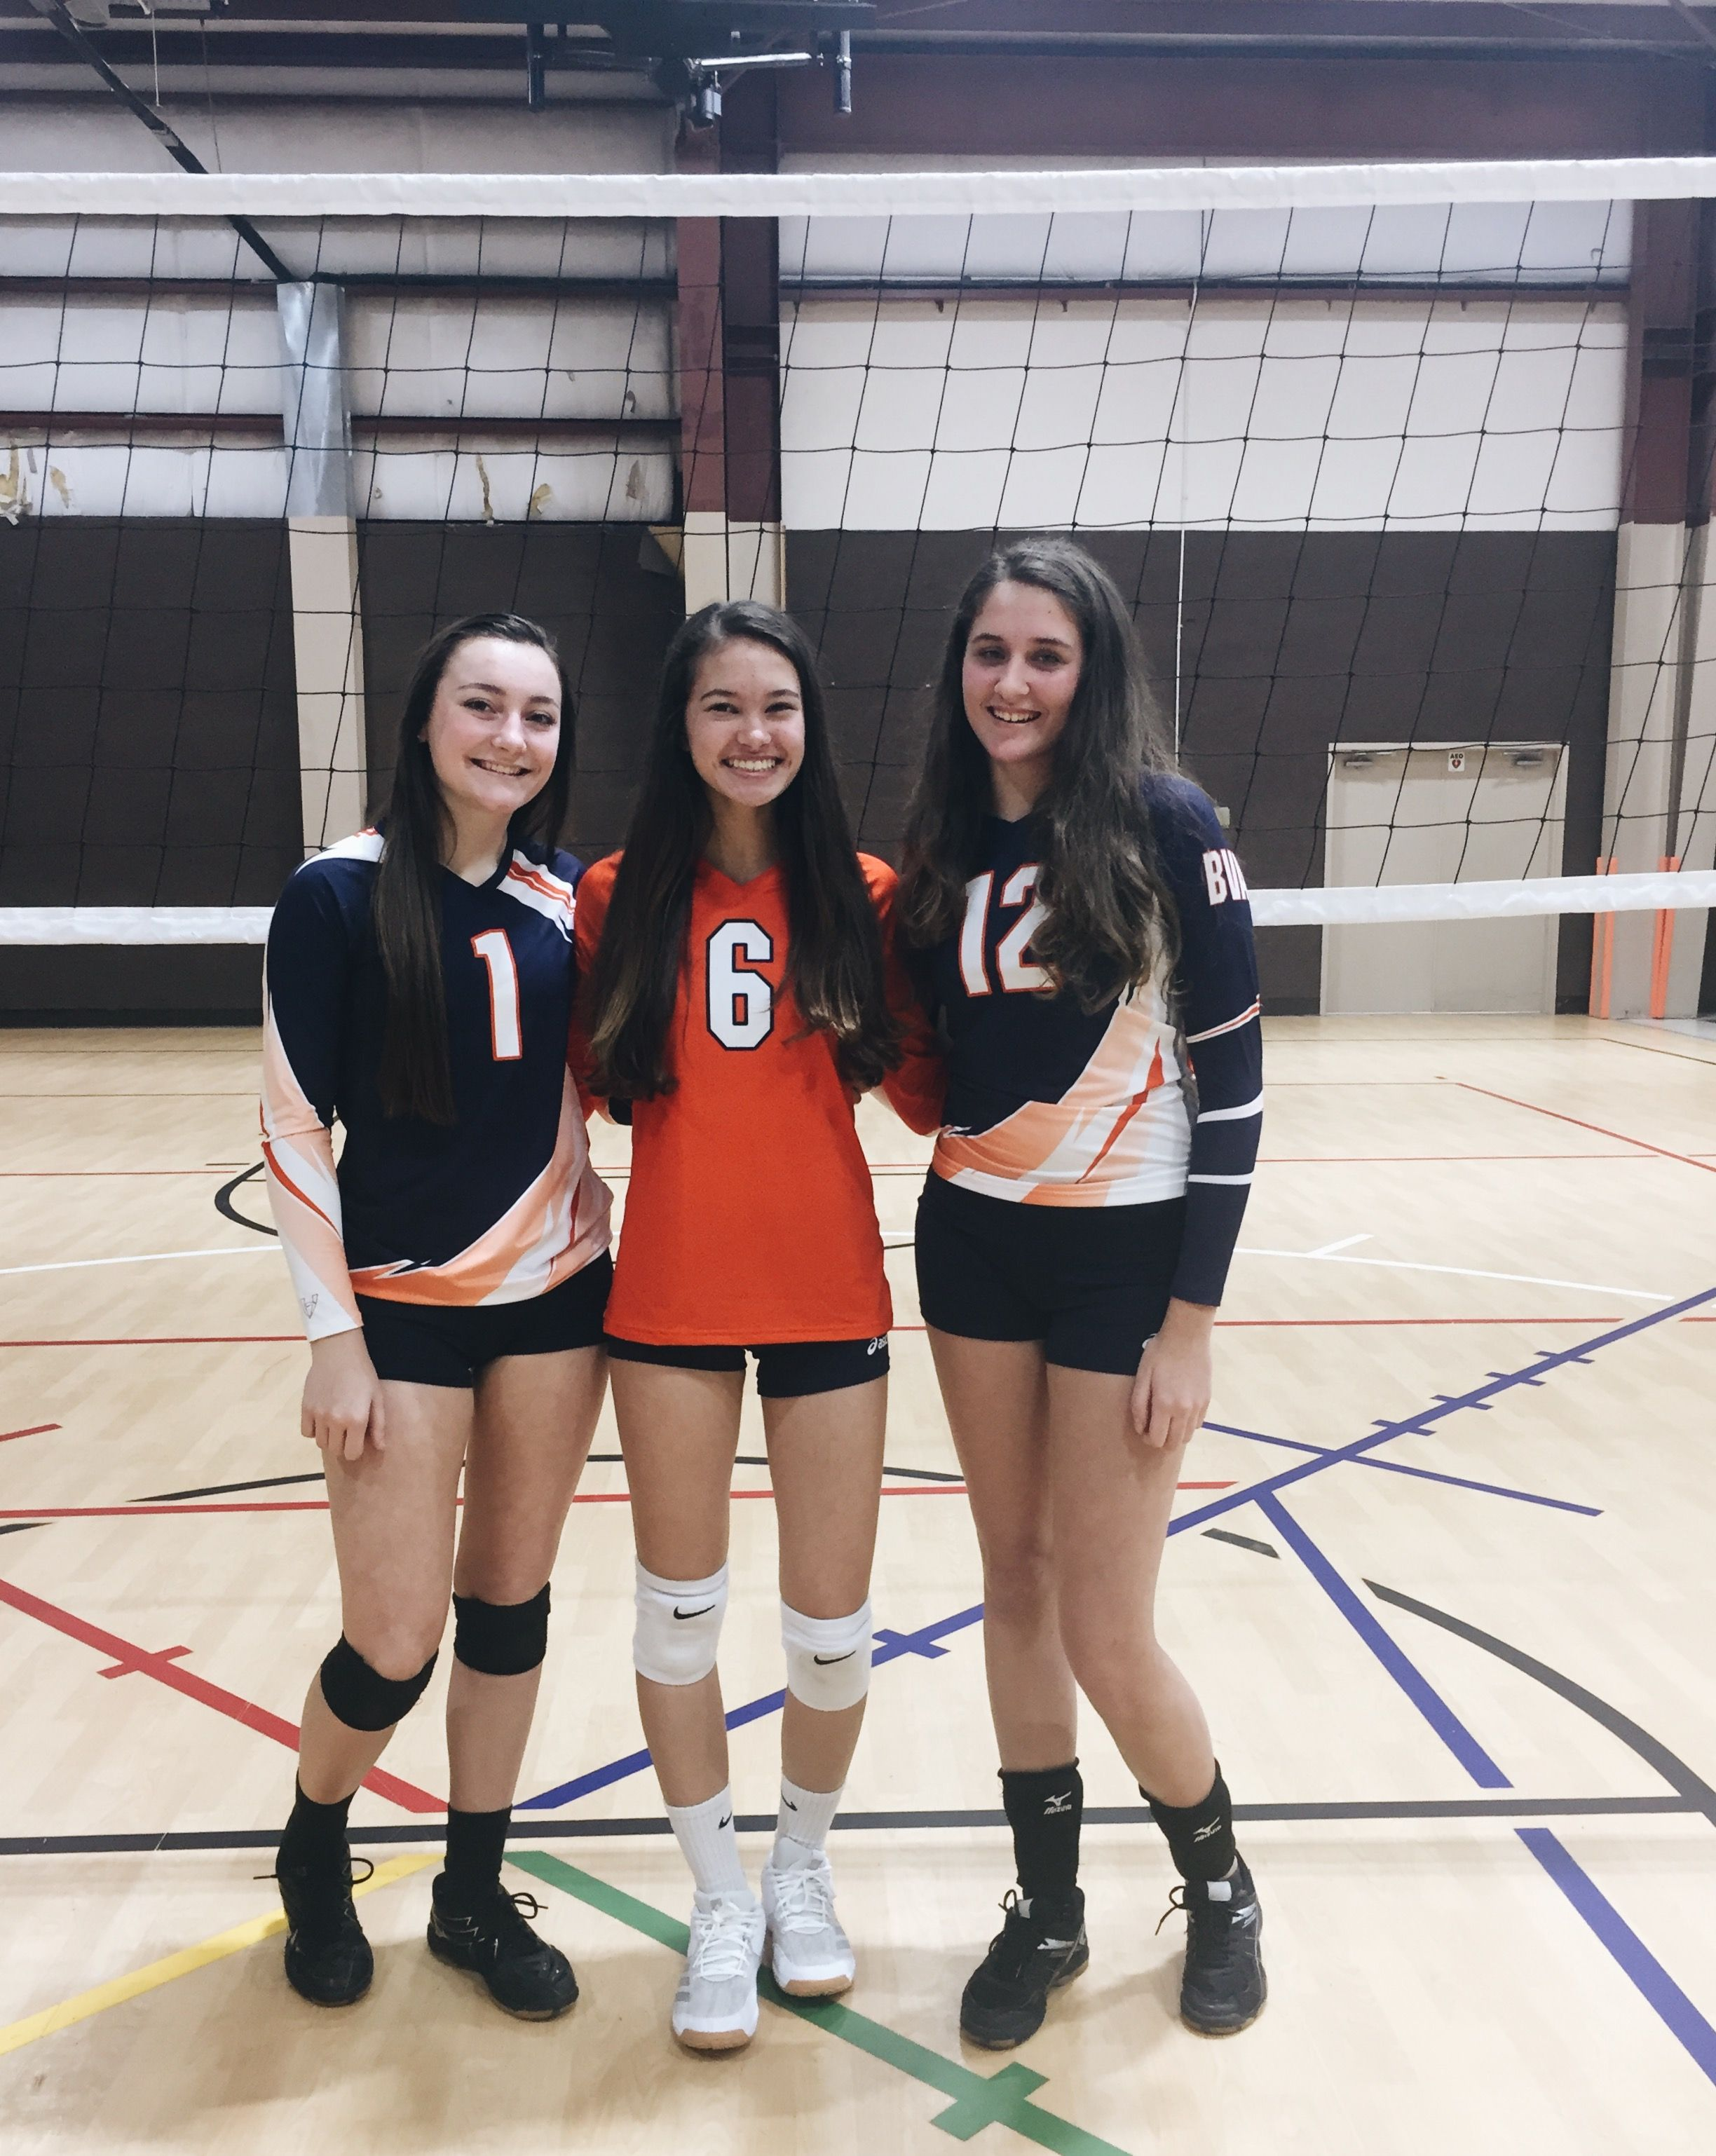 Pin By Kalynn Carrillo On Volley Women Volleyball Volleyball Pictures Volleyball Team Pictures